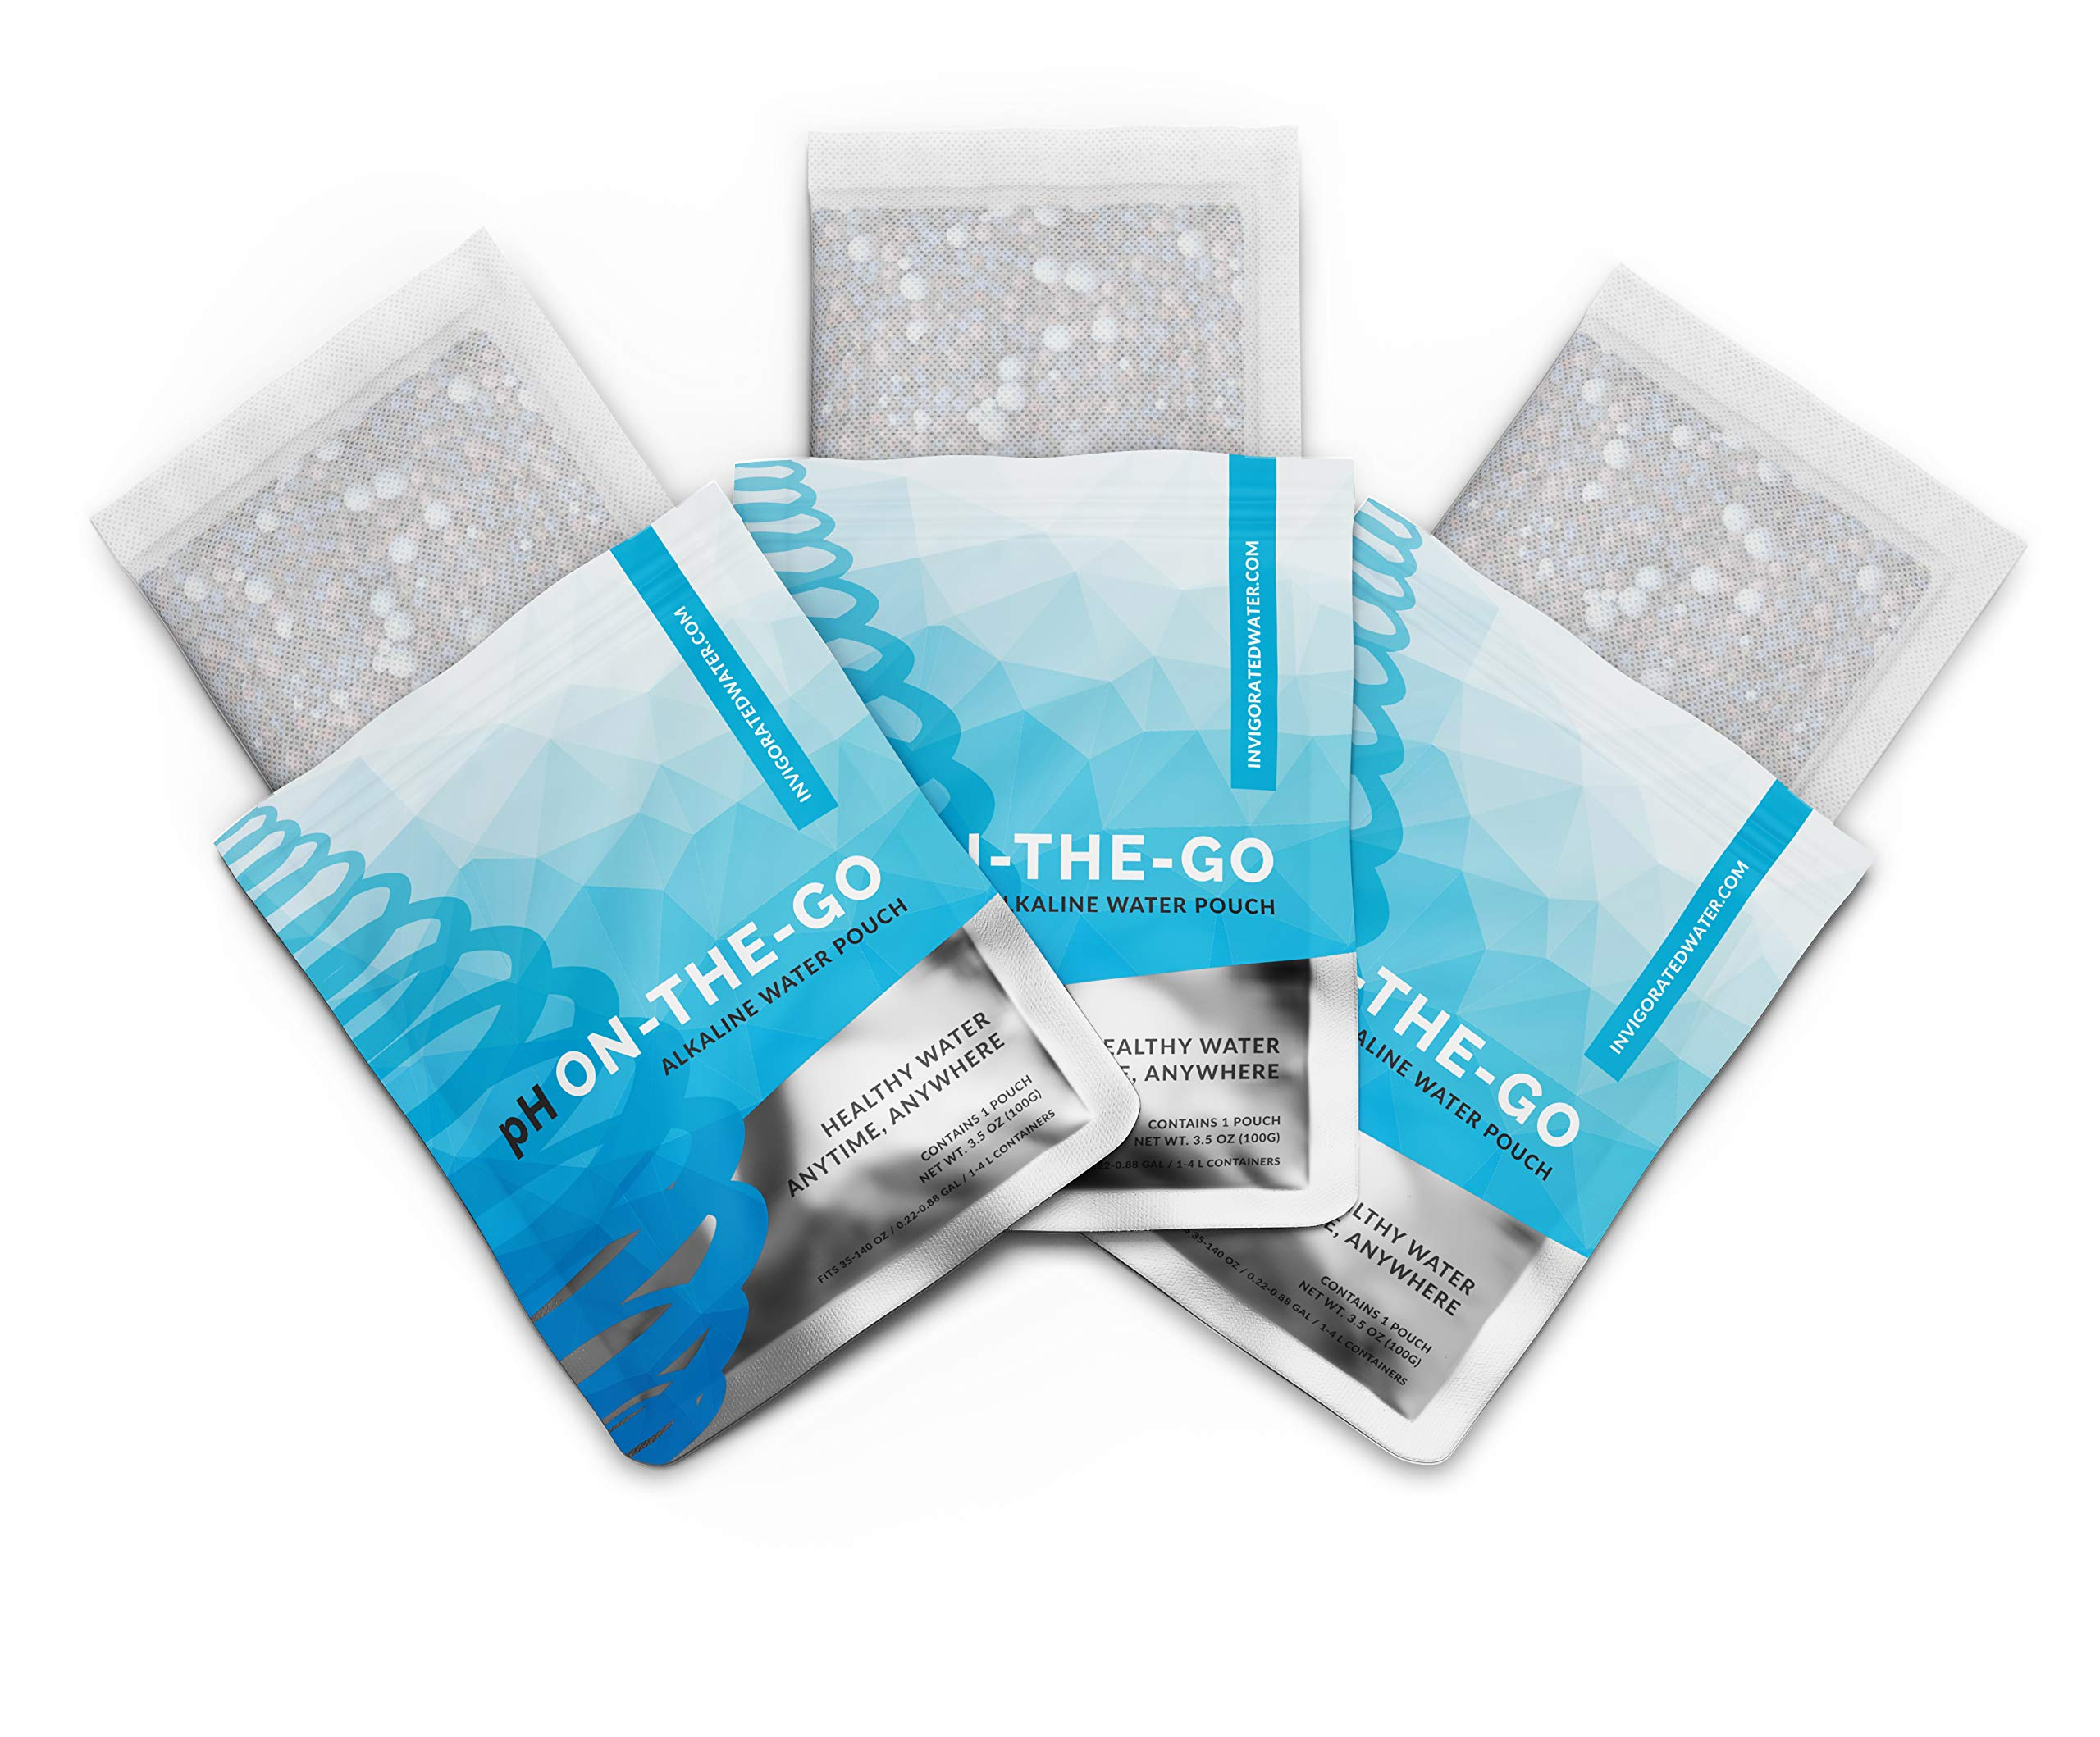 pH ON-THE-GO Alkaline Water Filter Pouch- Portable Alkaline Water Filtration System For Your Bottle, Pitcher, Jug, Container - High pH Ionized Water - Long-Life 105 Gallon/400 Litre (3-pack) by Invigorated Water (Image #3)